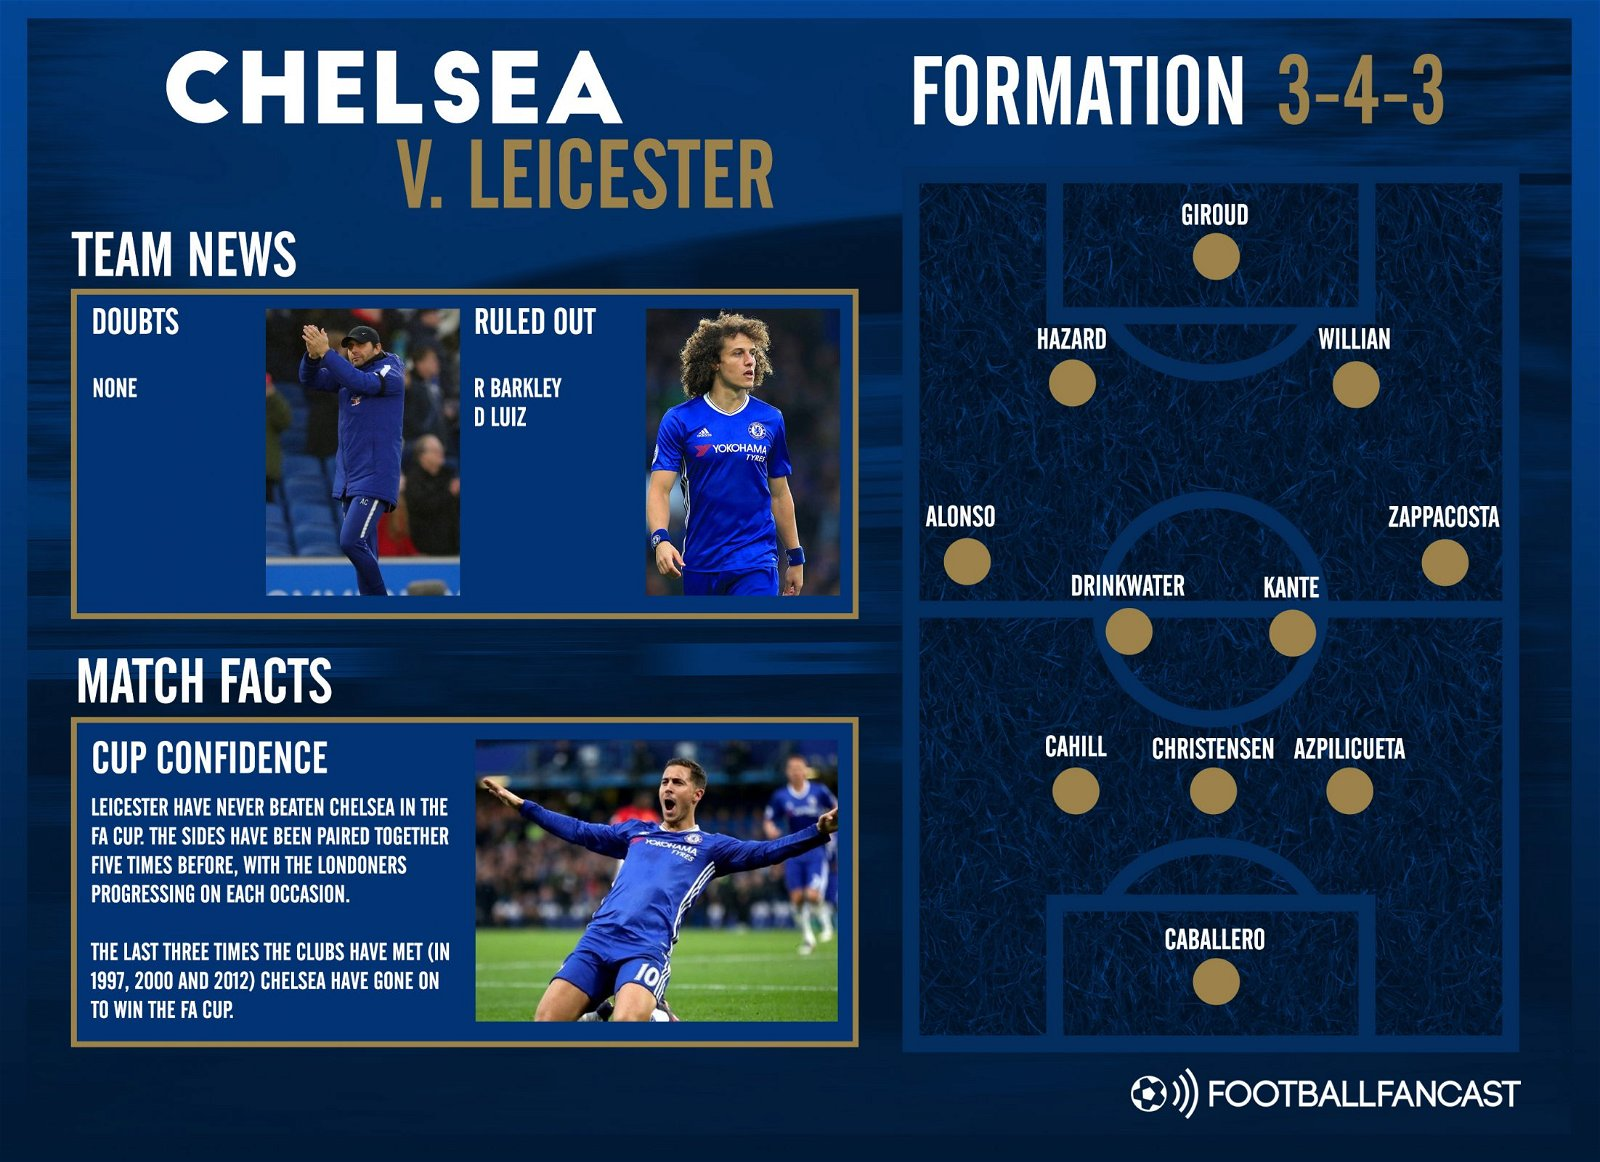 Chelsea team news for FA Cup clash with Leicester City